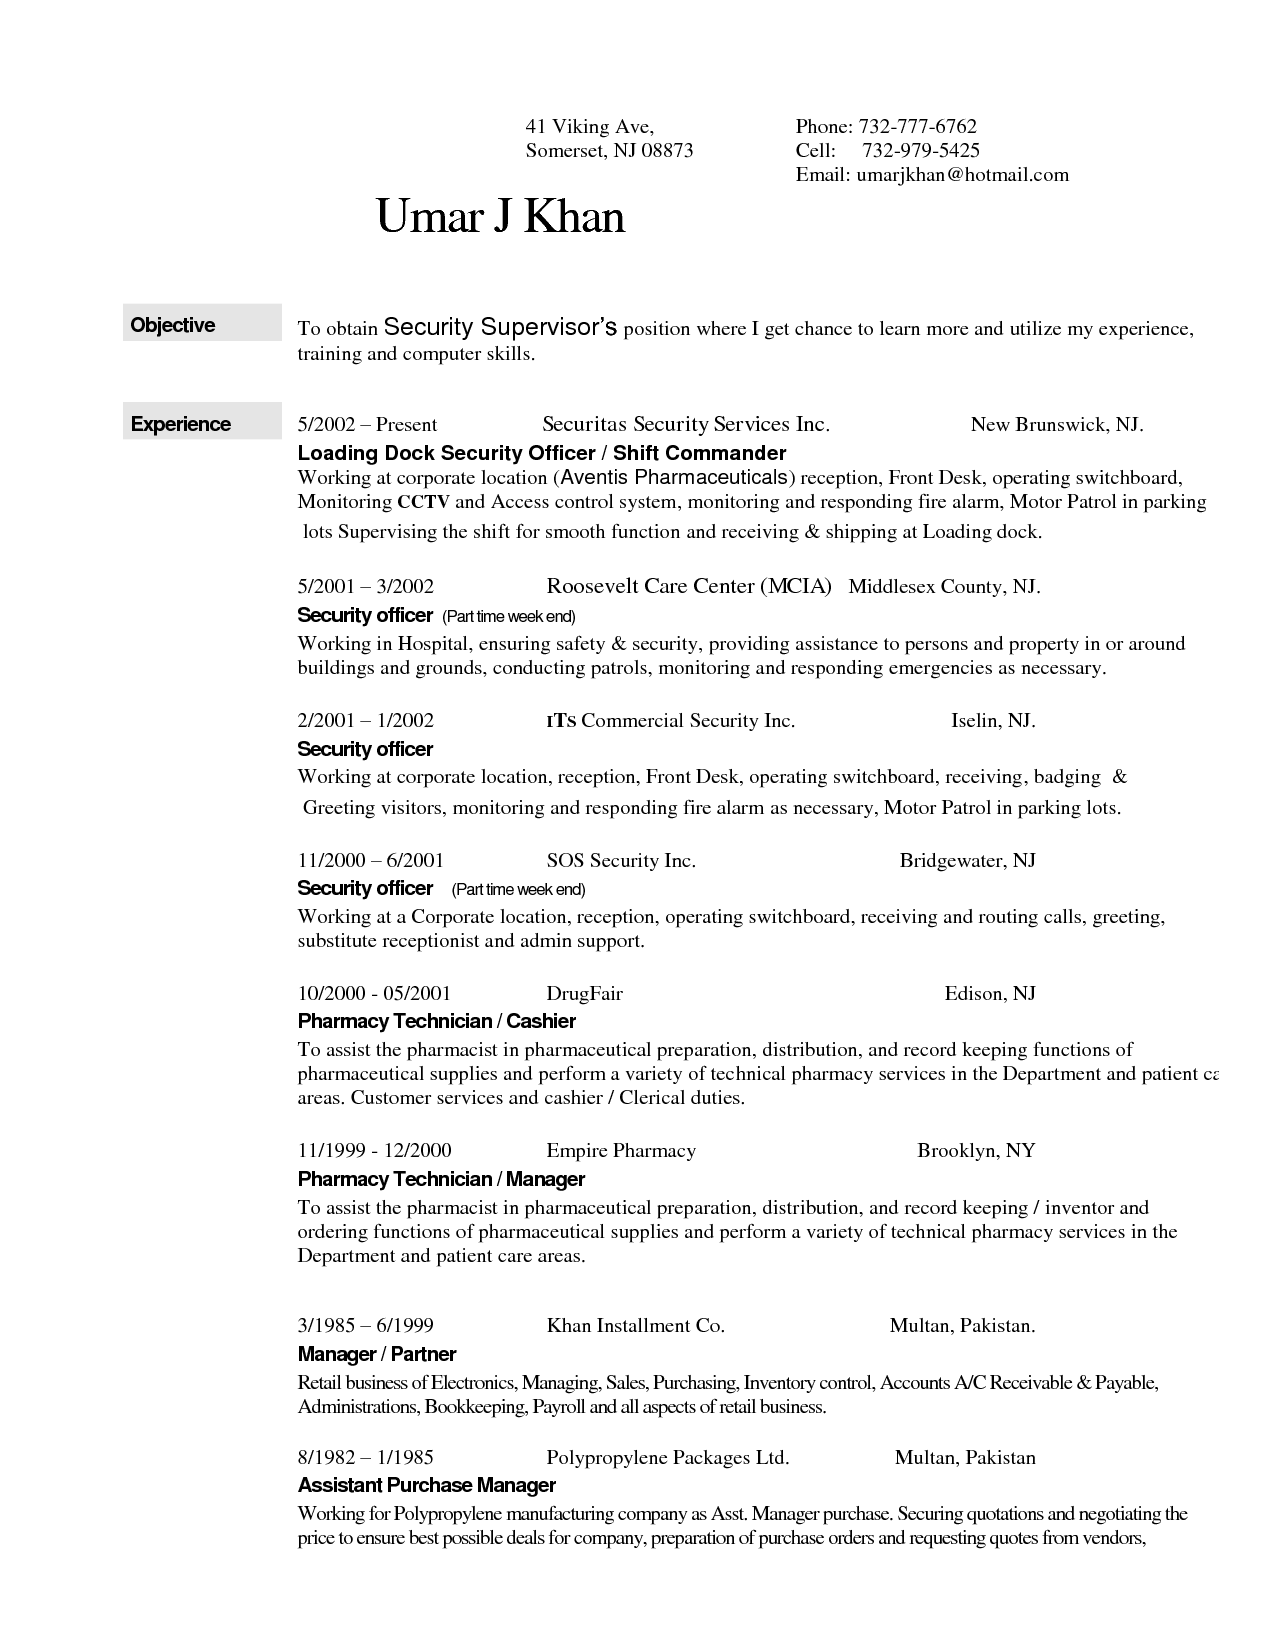 Entry level security guard resume examples httpjobresume entry level security guard resume examples httpjobresume altavistaventures